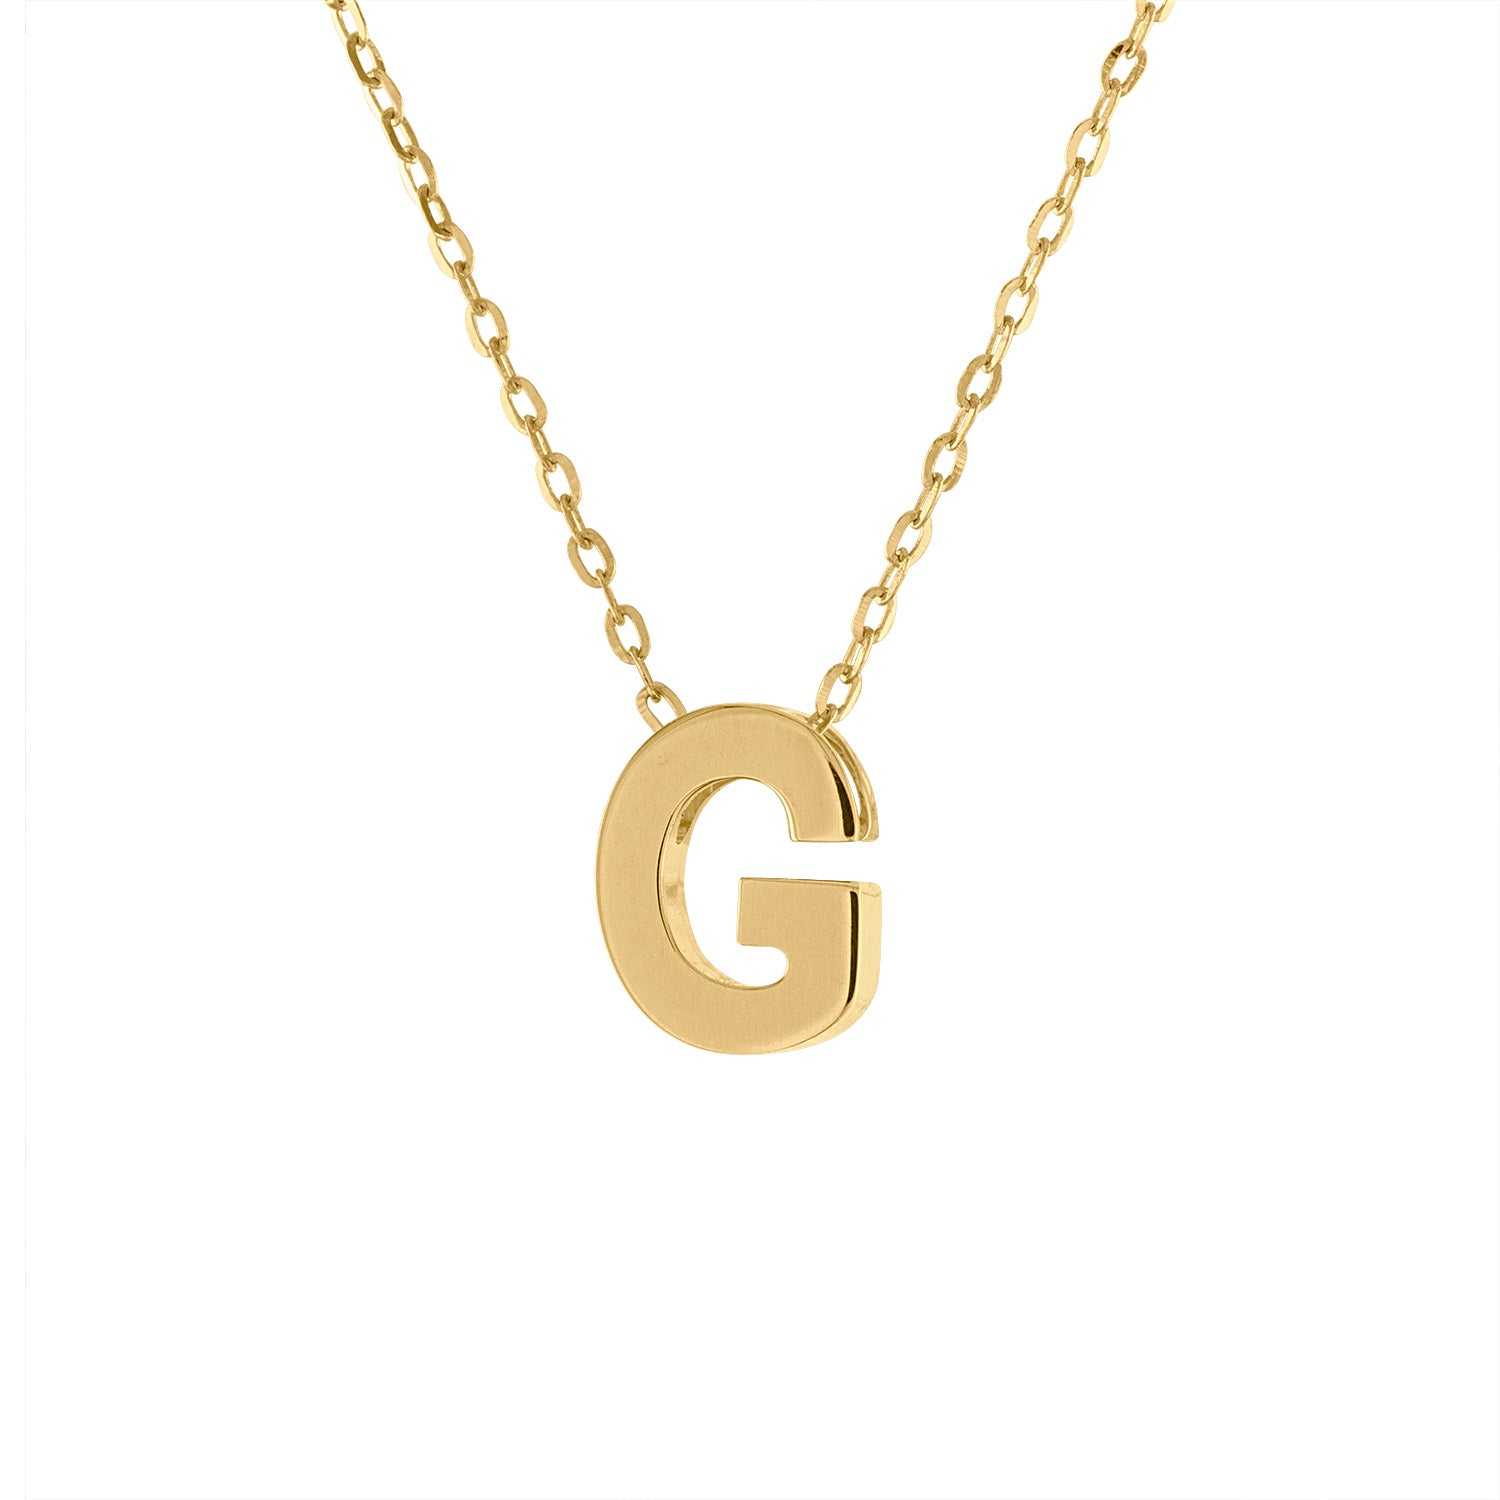 14k Yellow Gold plain initial G necklace